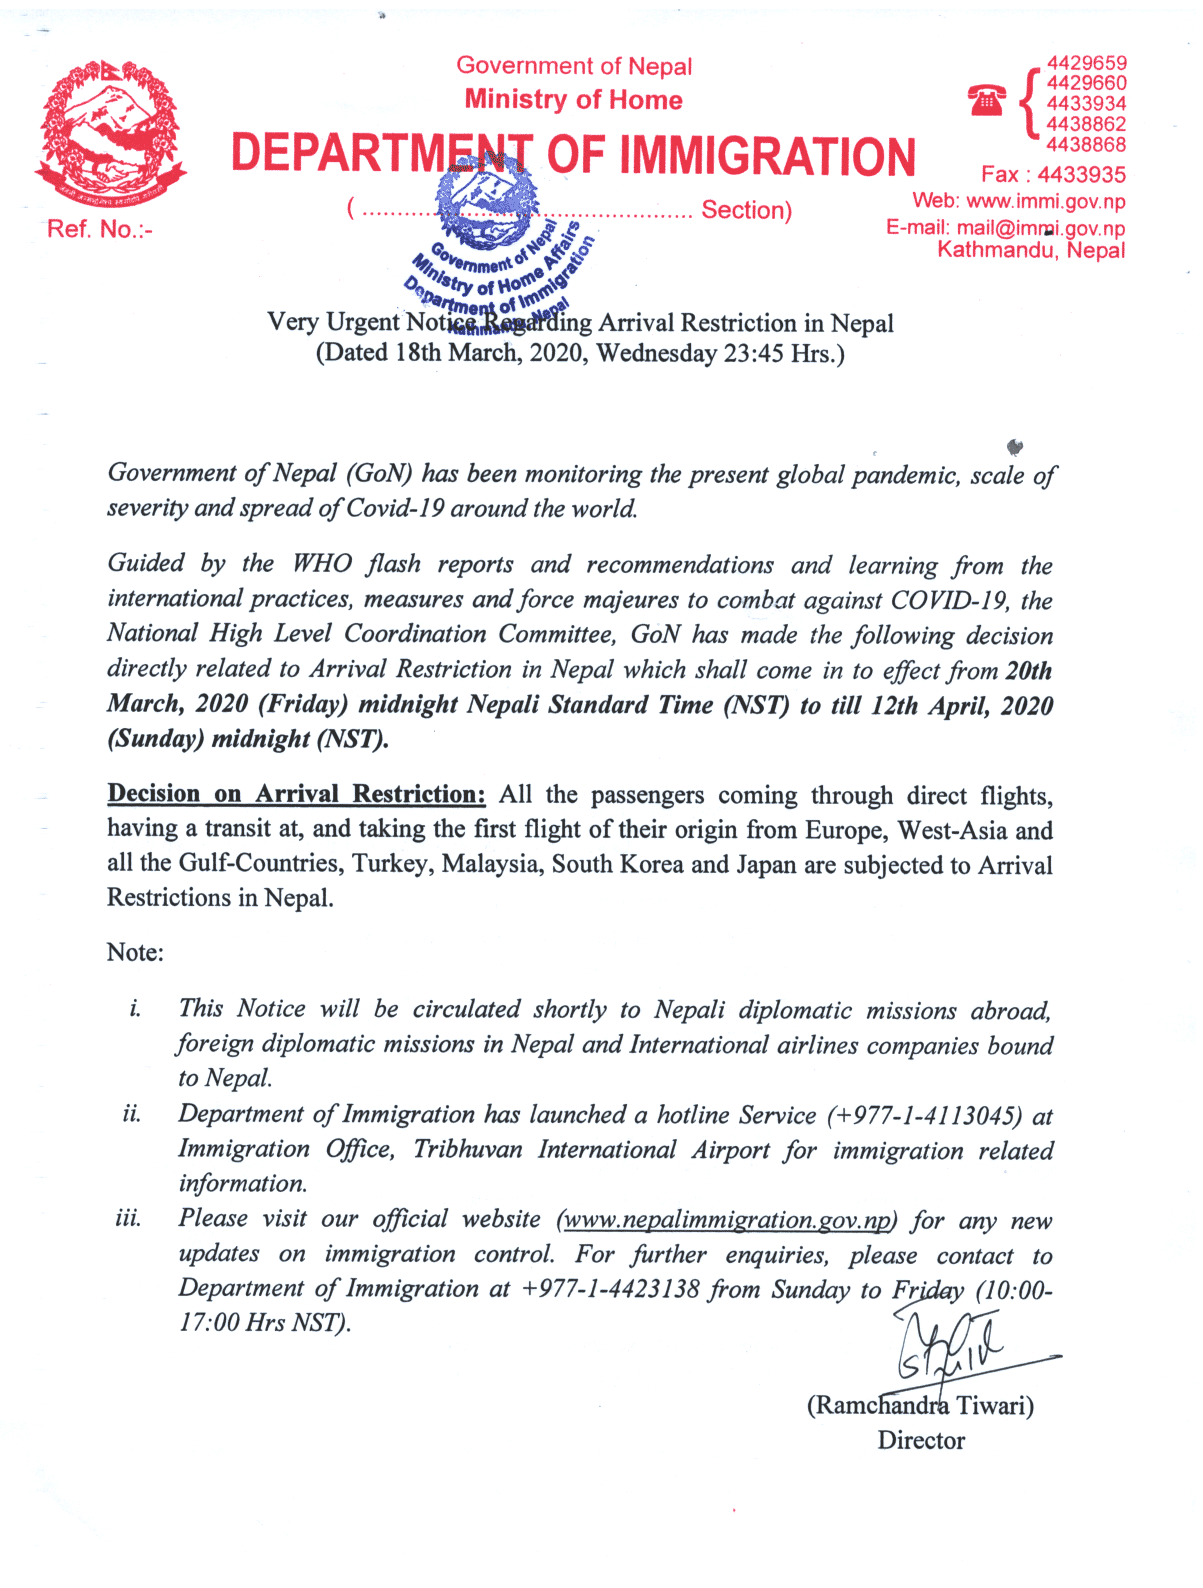 Nepal Government restriction arrival flight notice